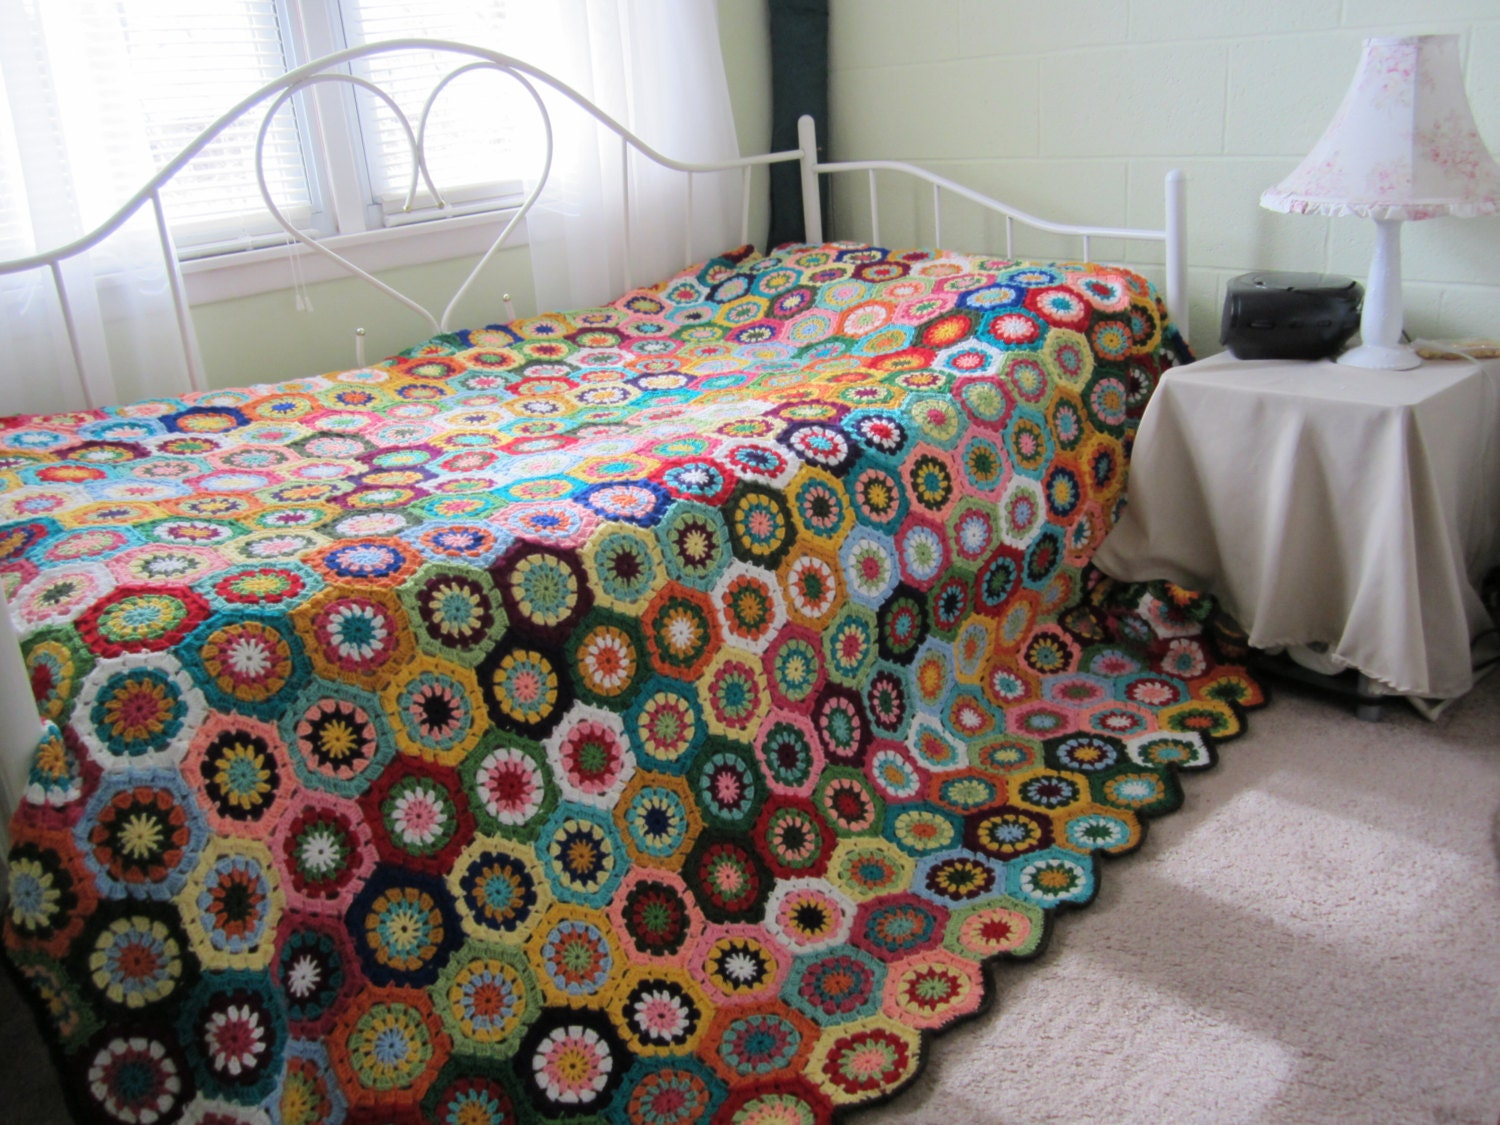 Crochet Queen Size Blanket Pattern : Granny Square Crochet Queen size Afghan by GalyaKireva on Etsy